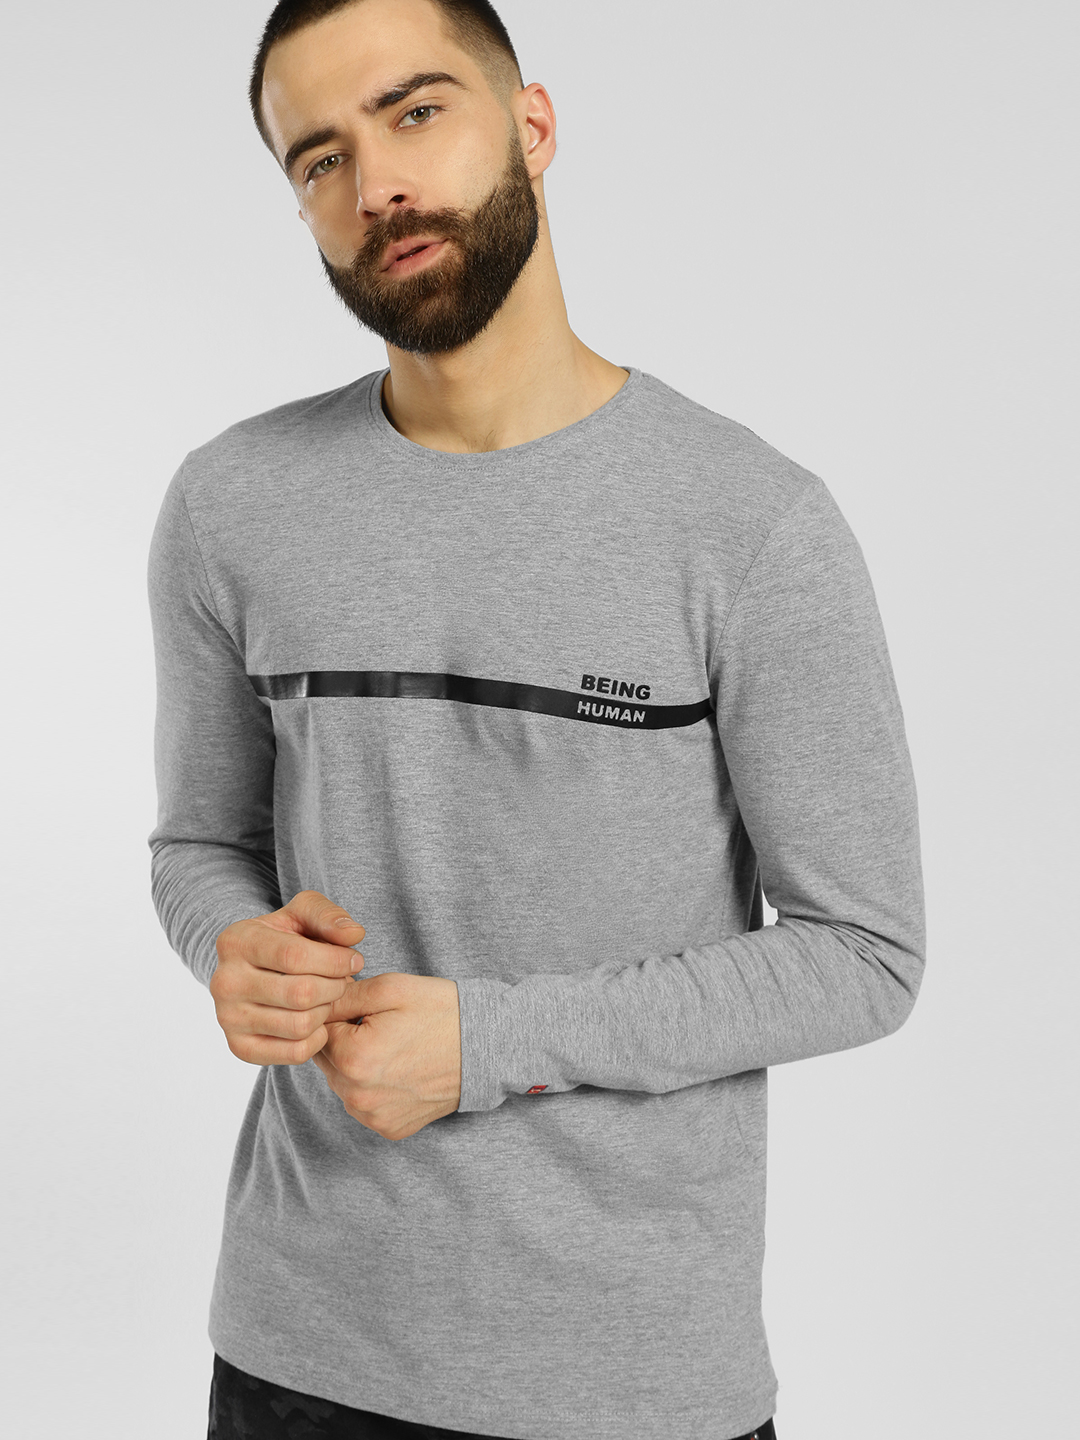 Being Human Grey Melange Long Sleeve T-Shirt 1